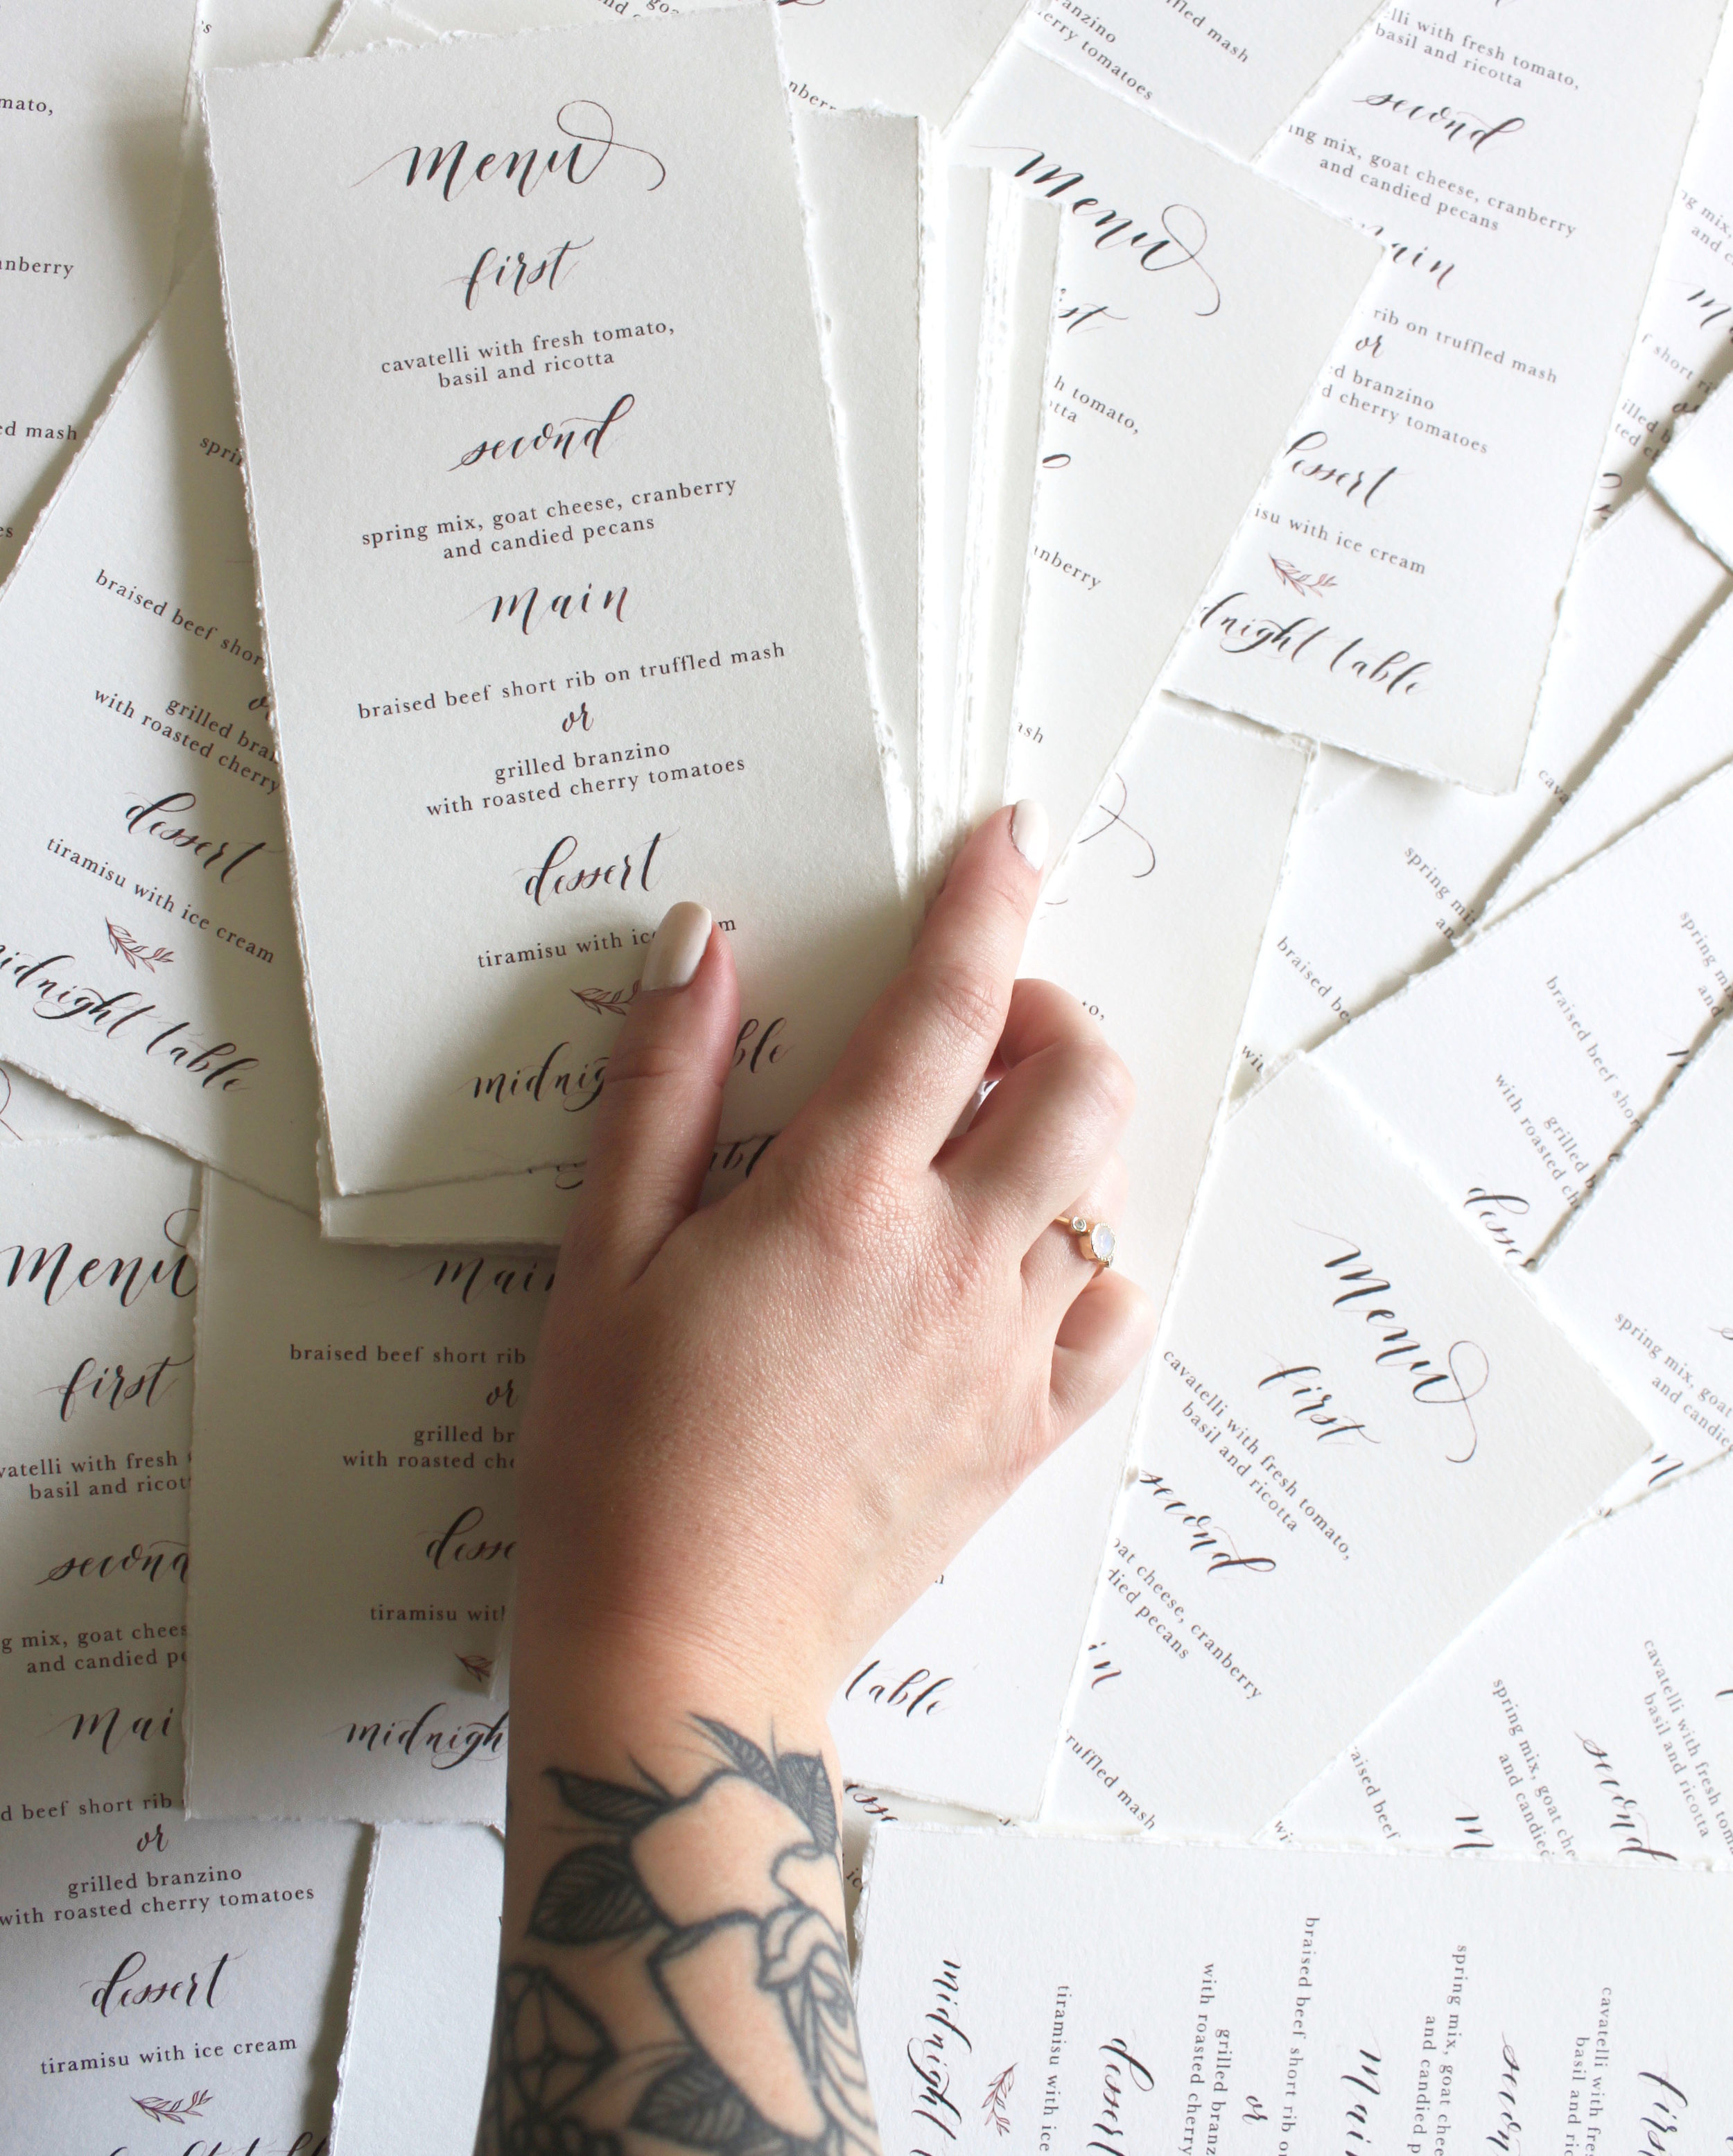 Rustic Menus for a Fall Wedding